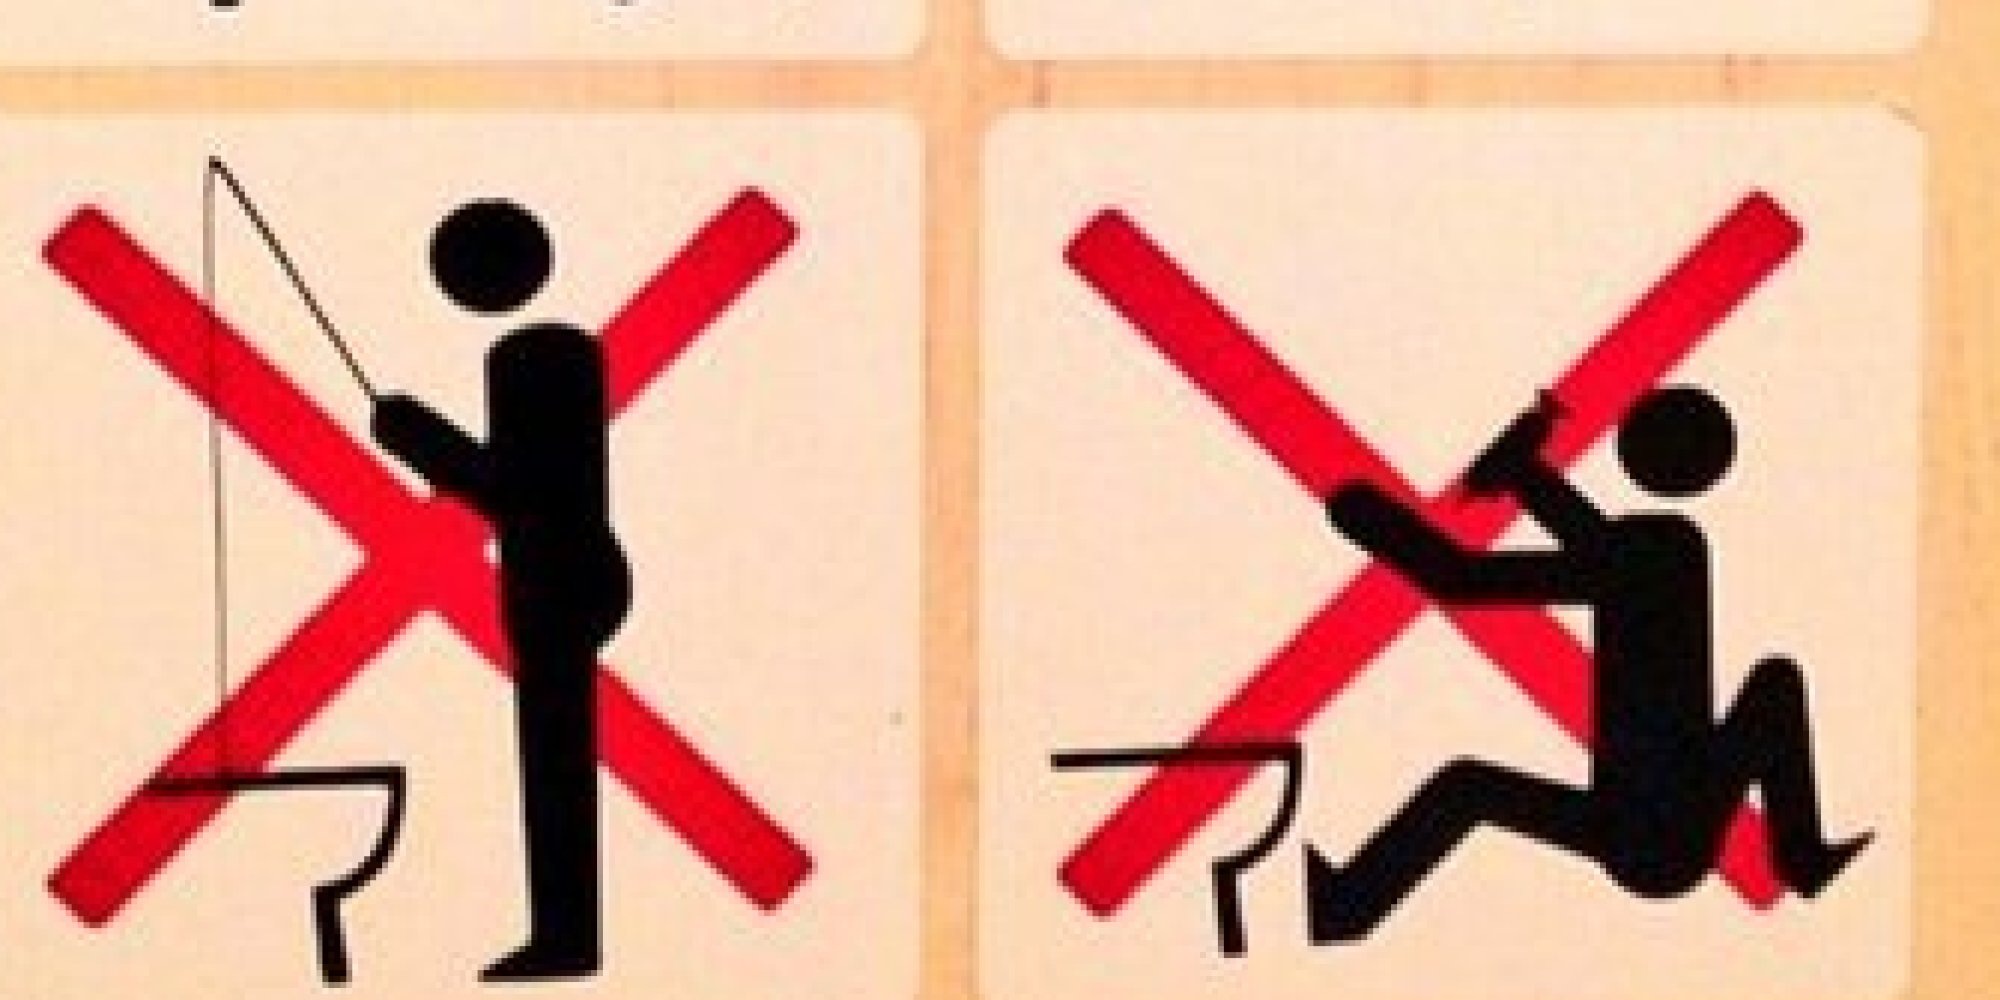 Sochi Bathroom Signs Forbid Fishing Upper Deckers In Olympic